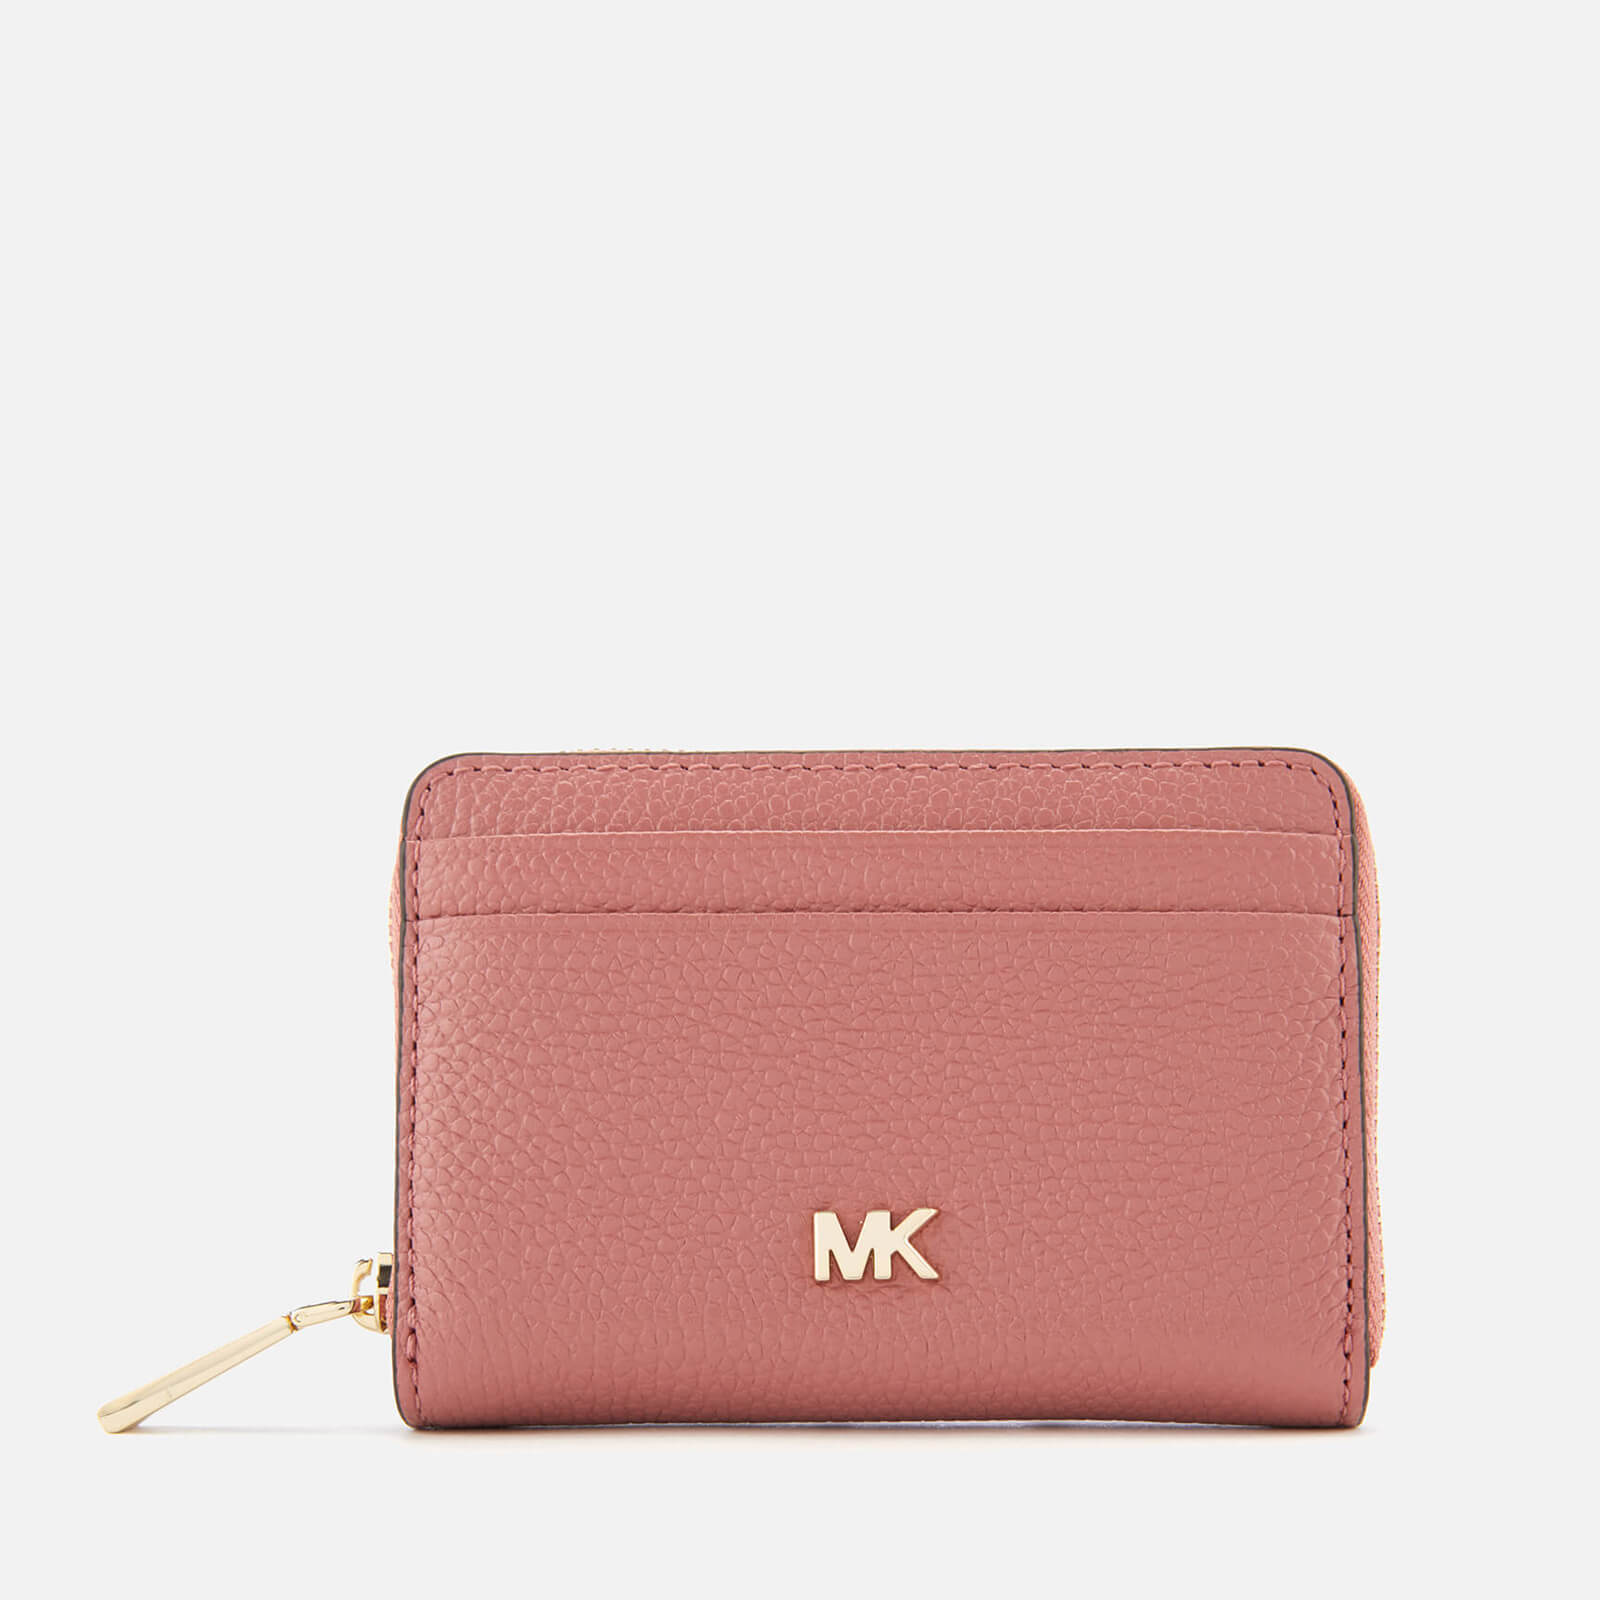 3cfaebff3f83b MICHAEL MICHAEL KORS Women s Money Pieces Coin Card Case - Rose - Free UK  Delivery over £50